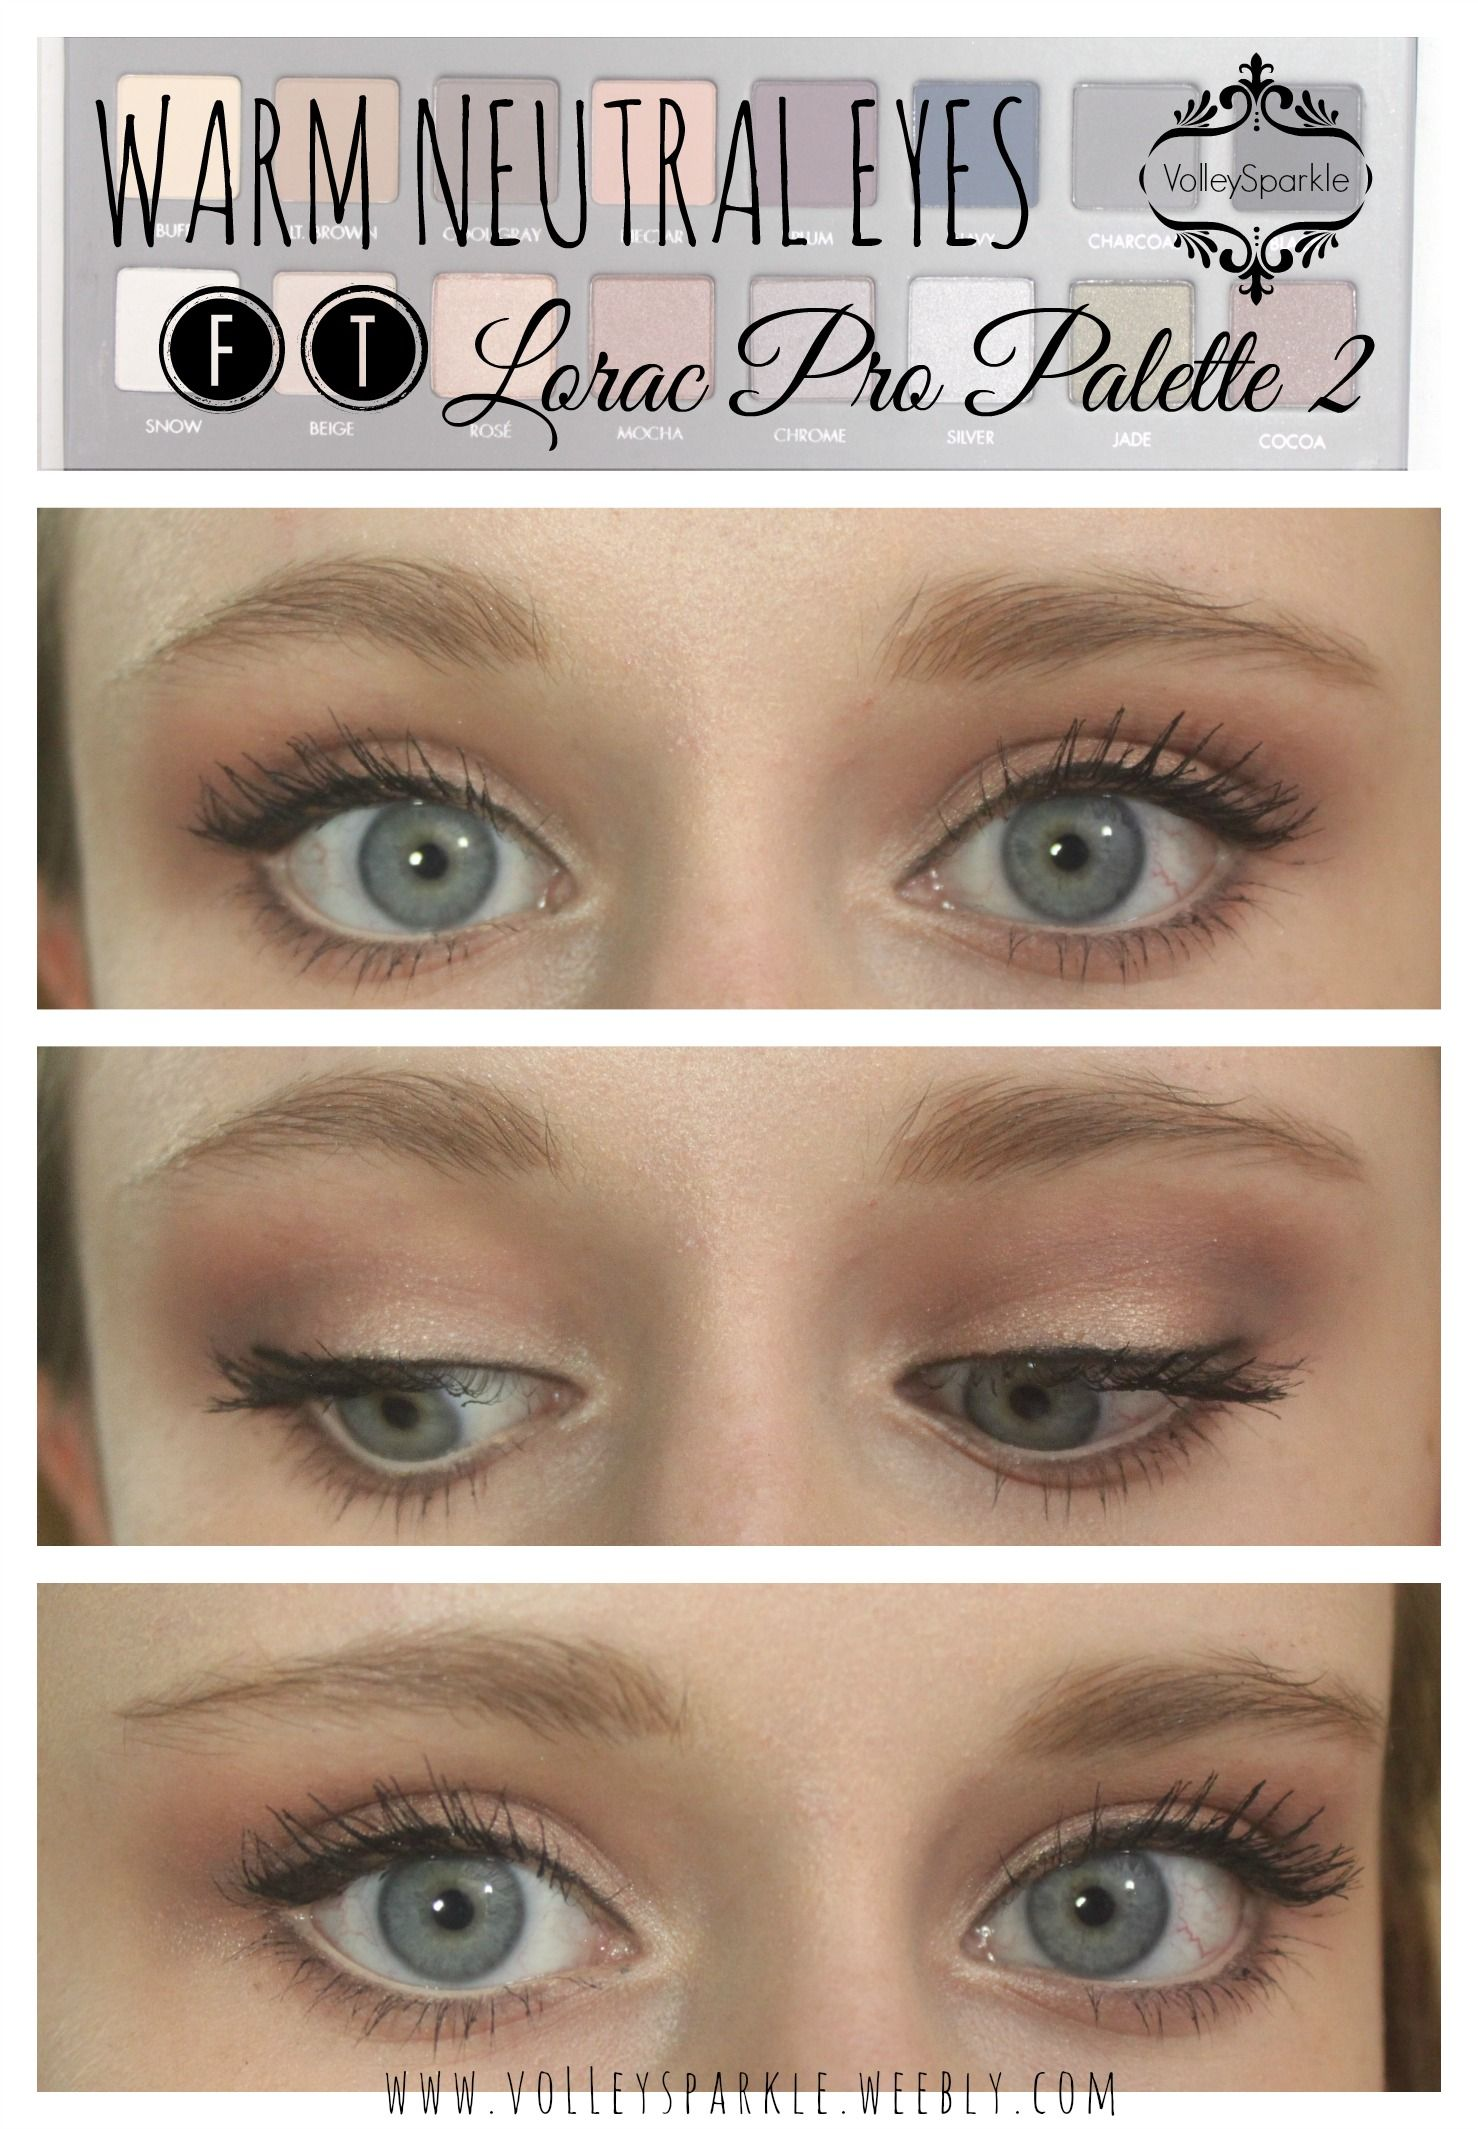 Warm Neutral Eye Look Ft Lorac Pro Palette 2 How To Makeup